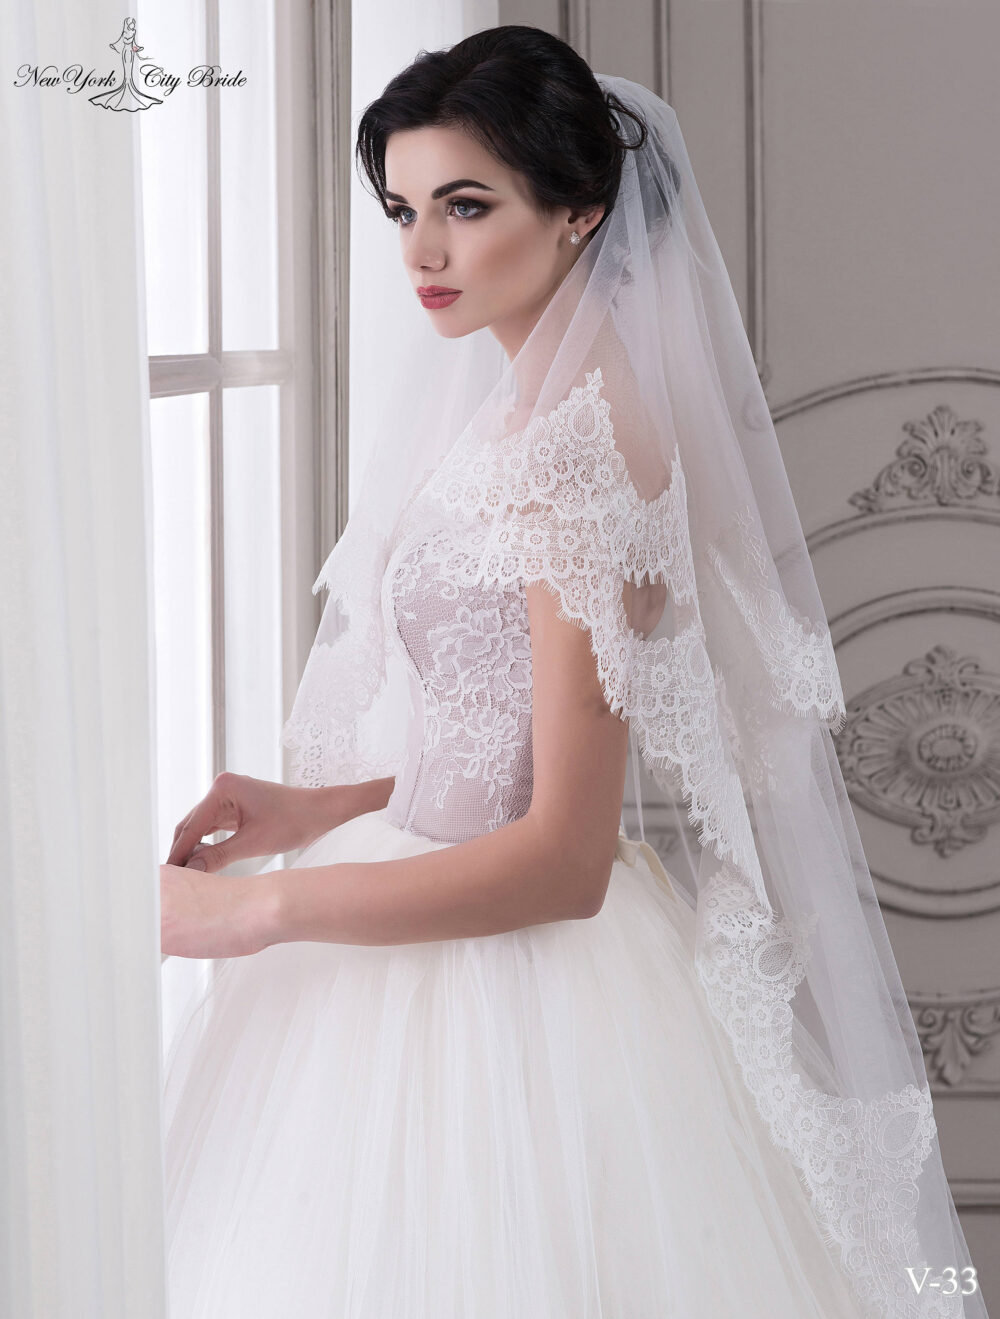 Wedding Lace Veil Grace, 72 Inches Two-Tier Veil, Bridal Veil , White Chapel Length